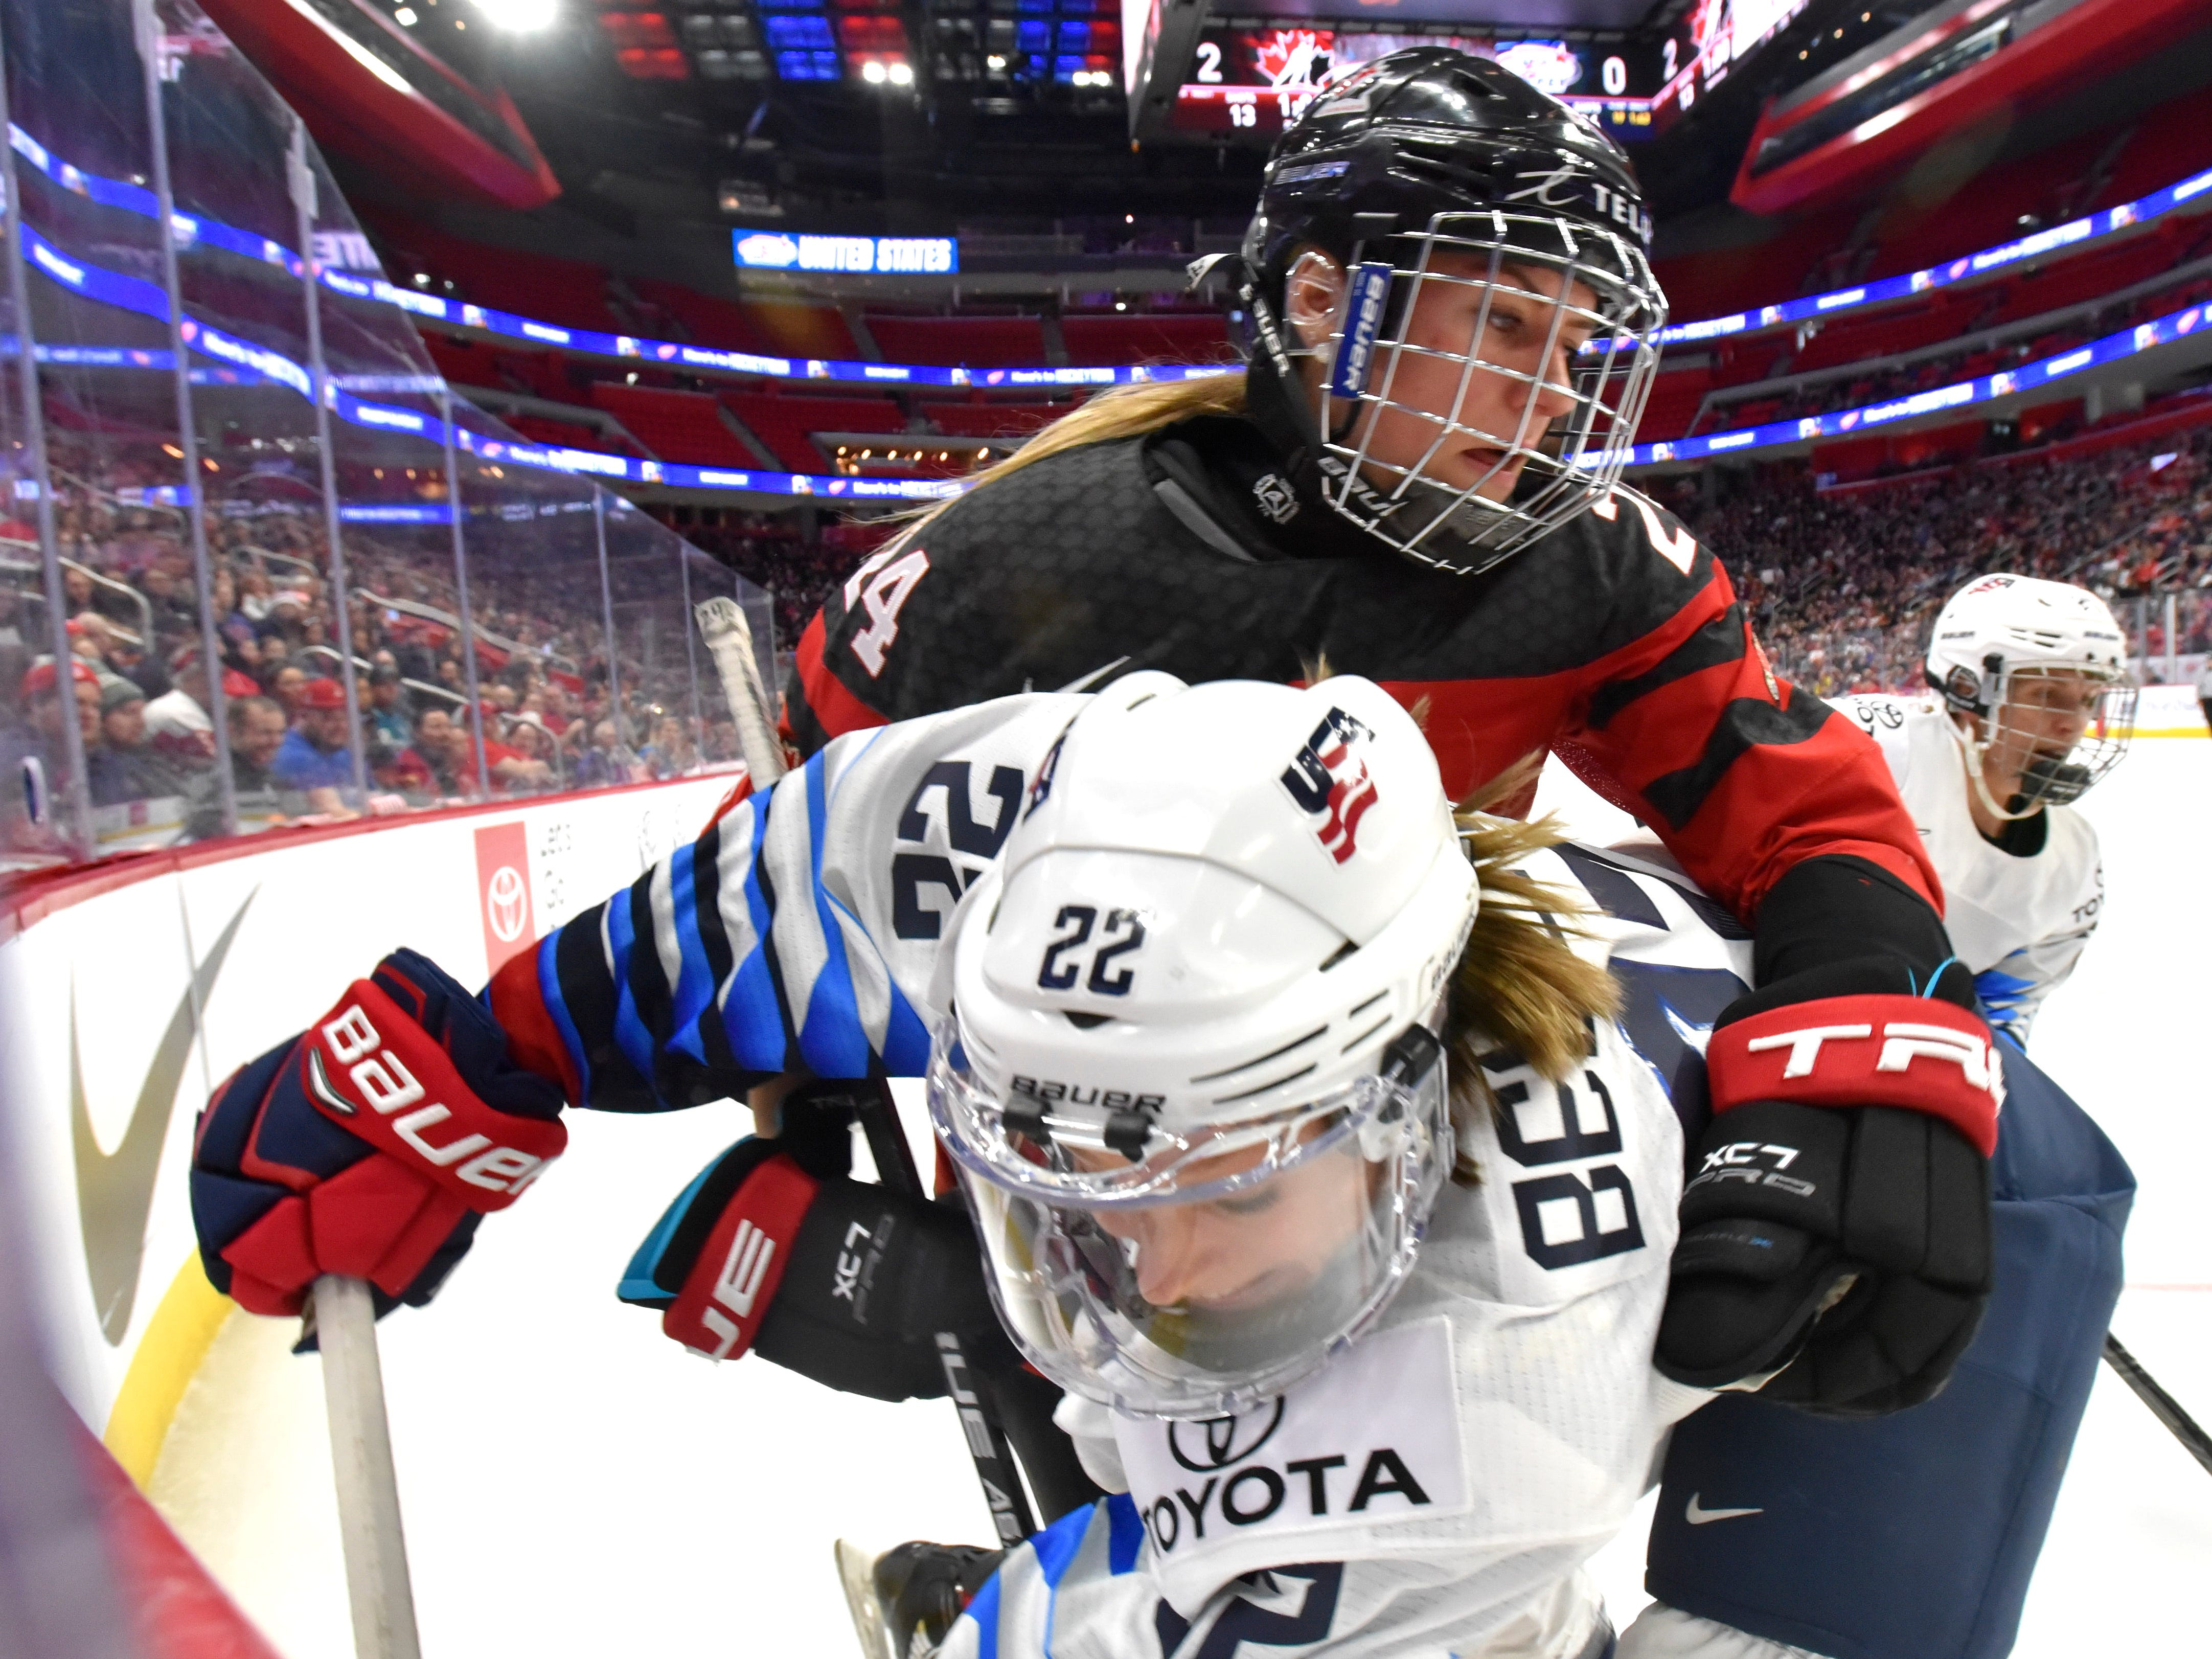 U.S's Kacey Bellamy(22) and Canada's Natalie Spooner(24) tight it up in the corner near the end of the second period.